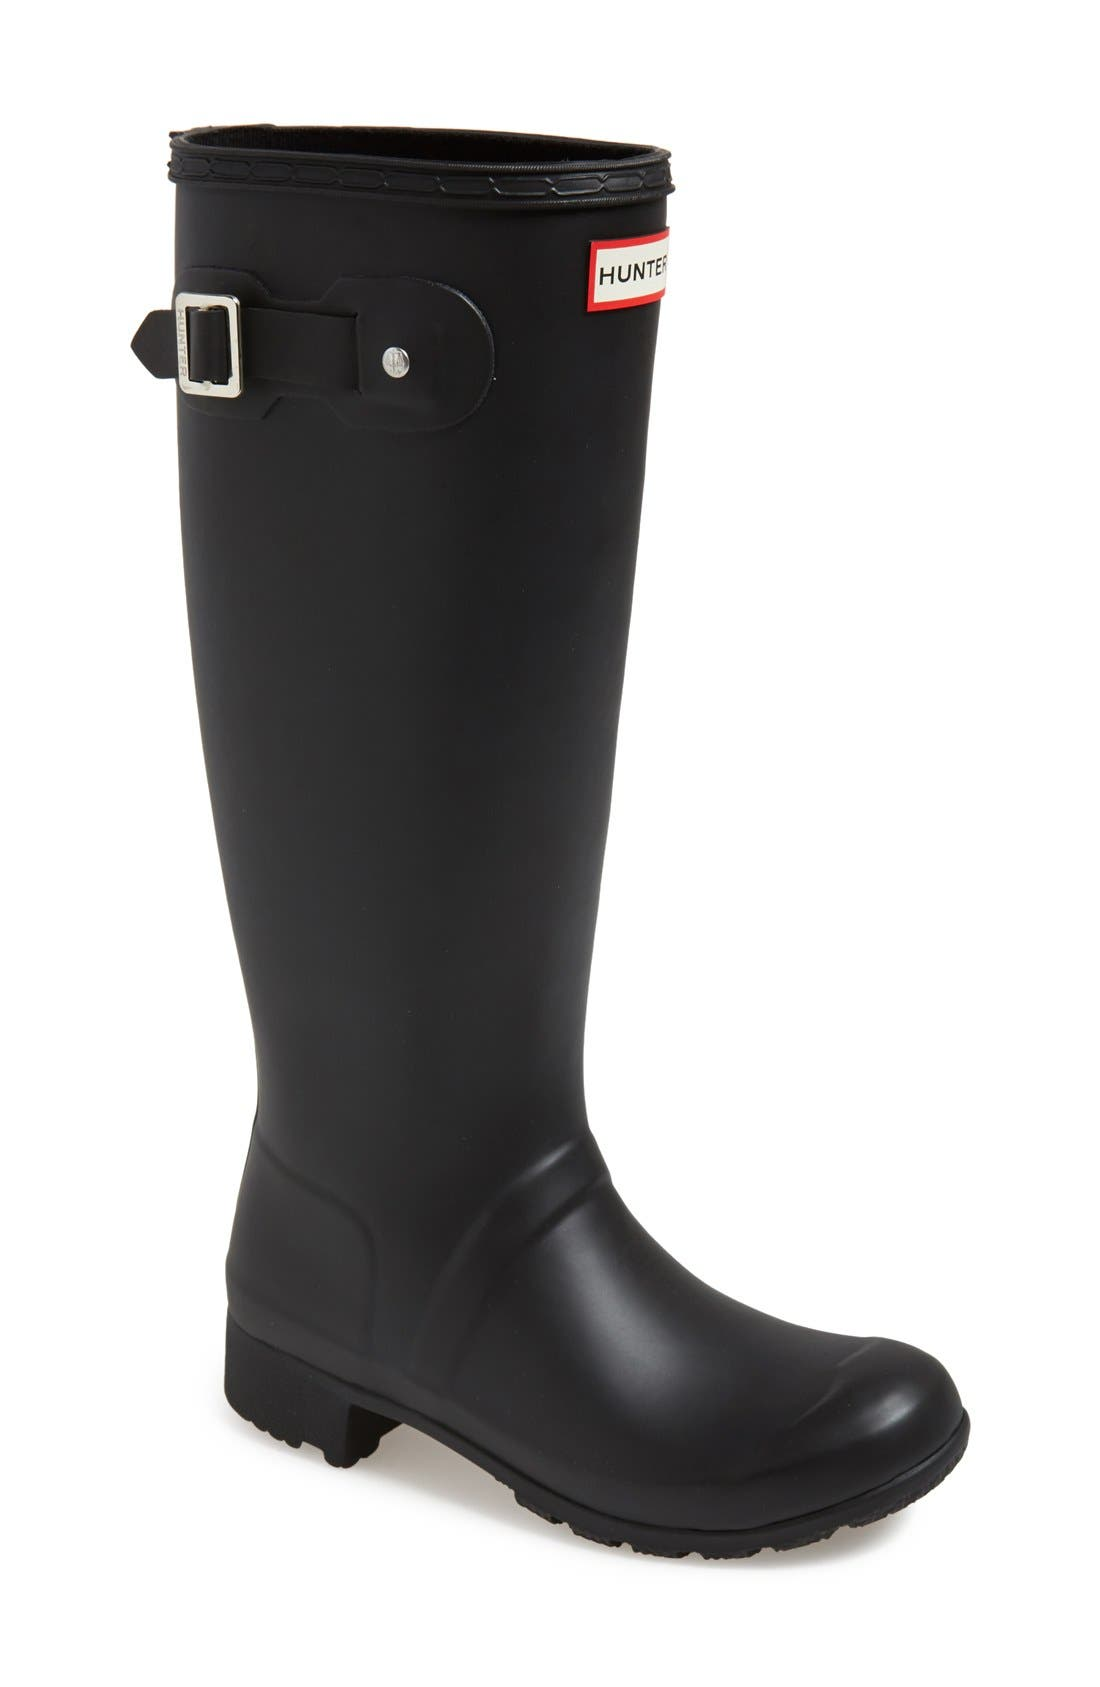 Main Image - Hunter 'Tour' Packable Rain Boot (Women)